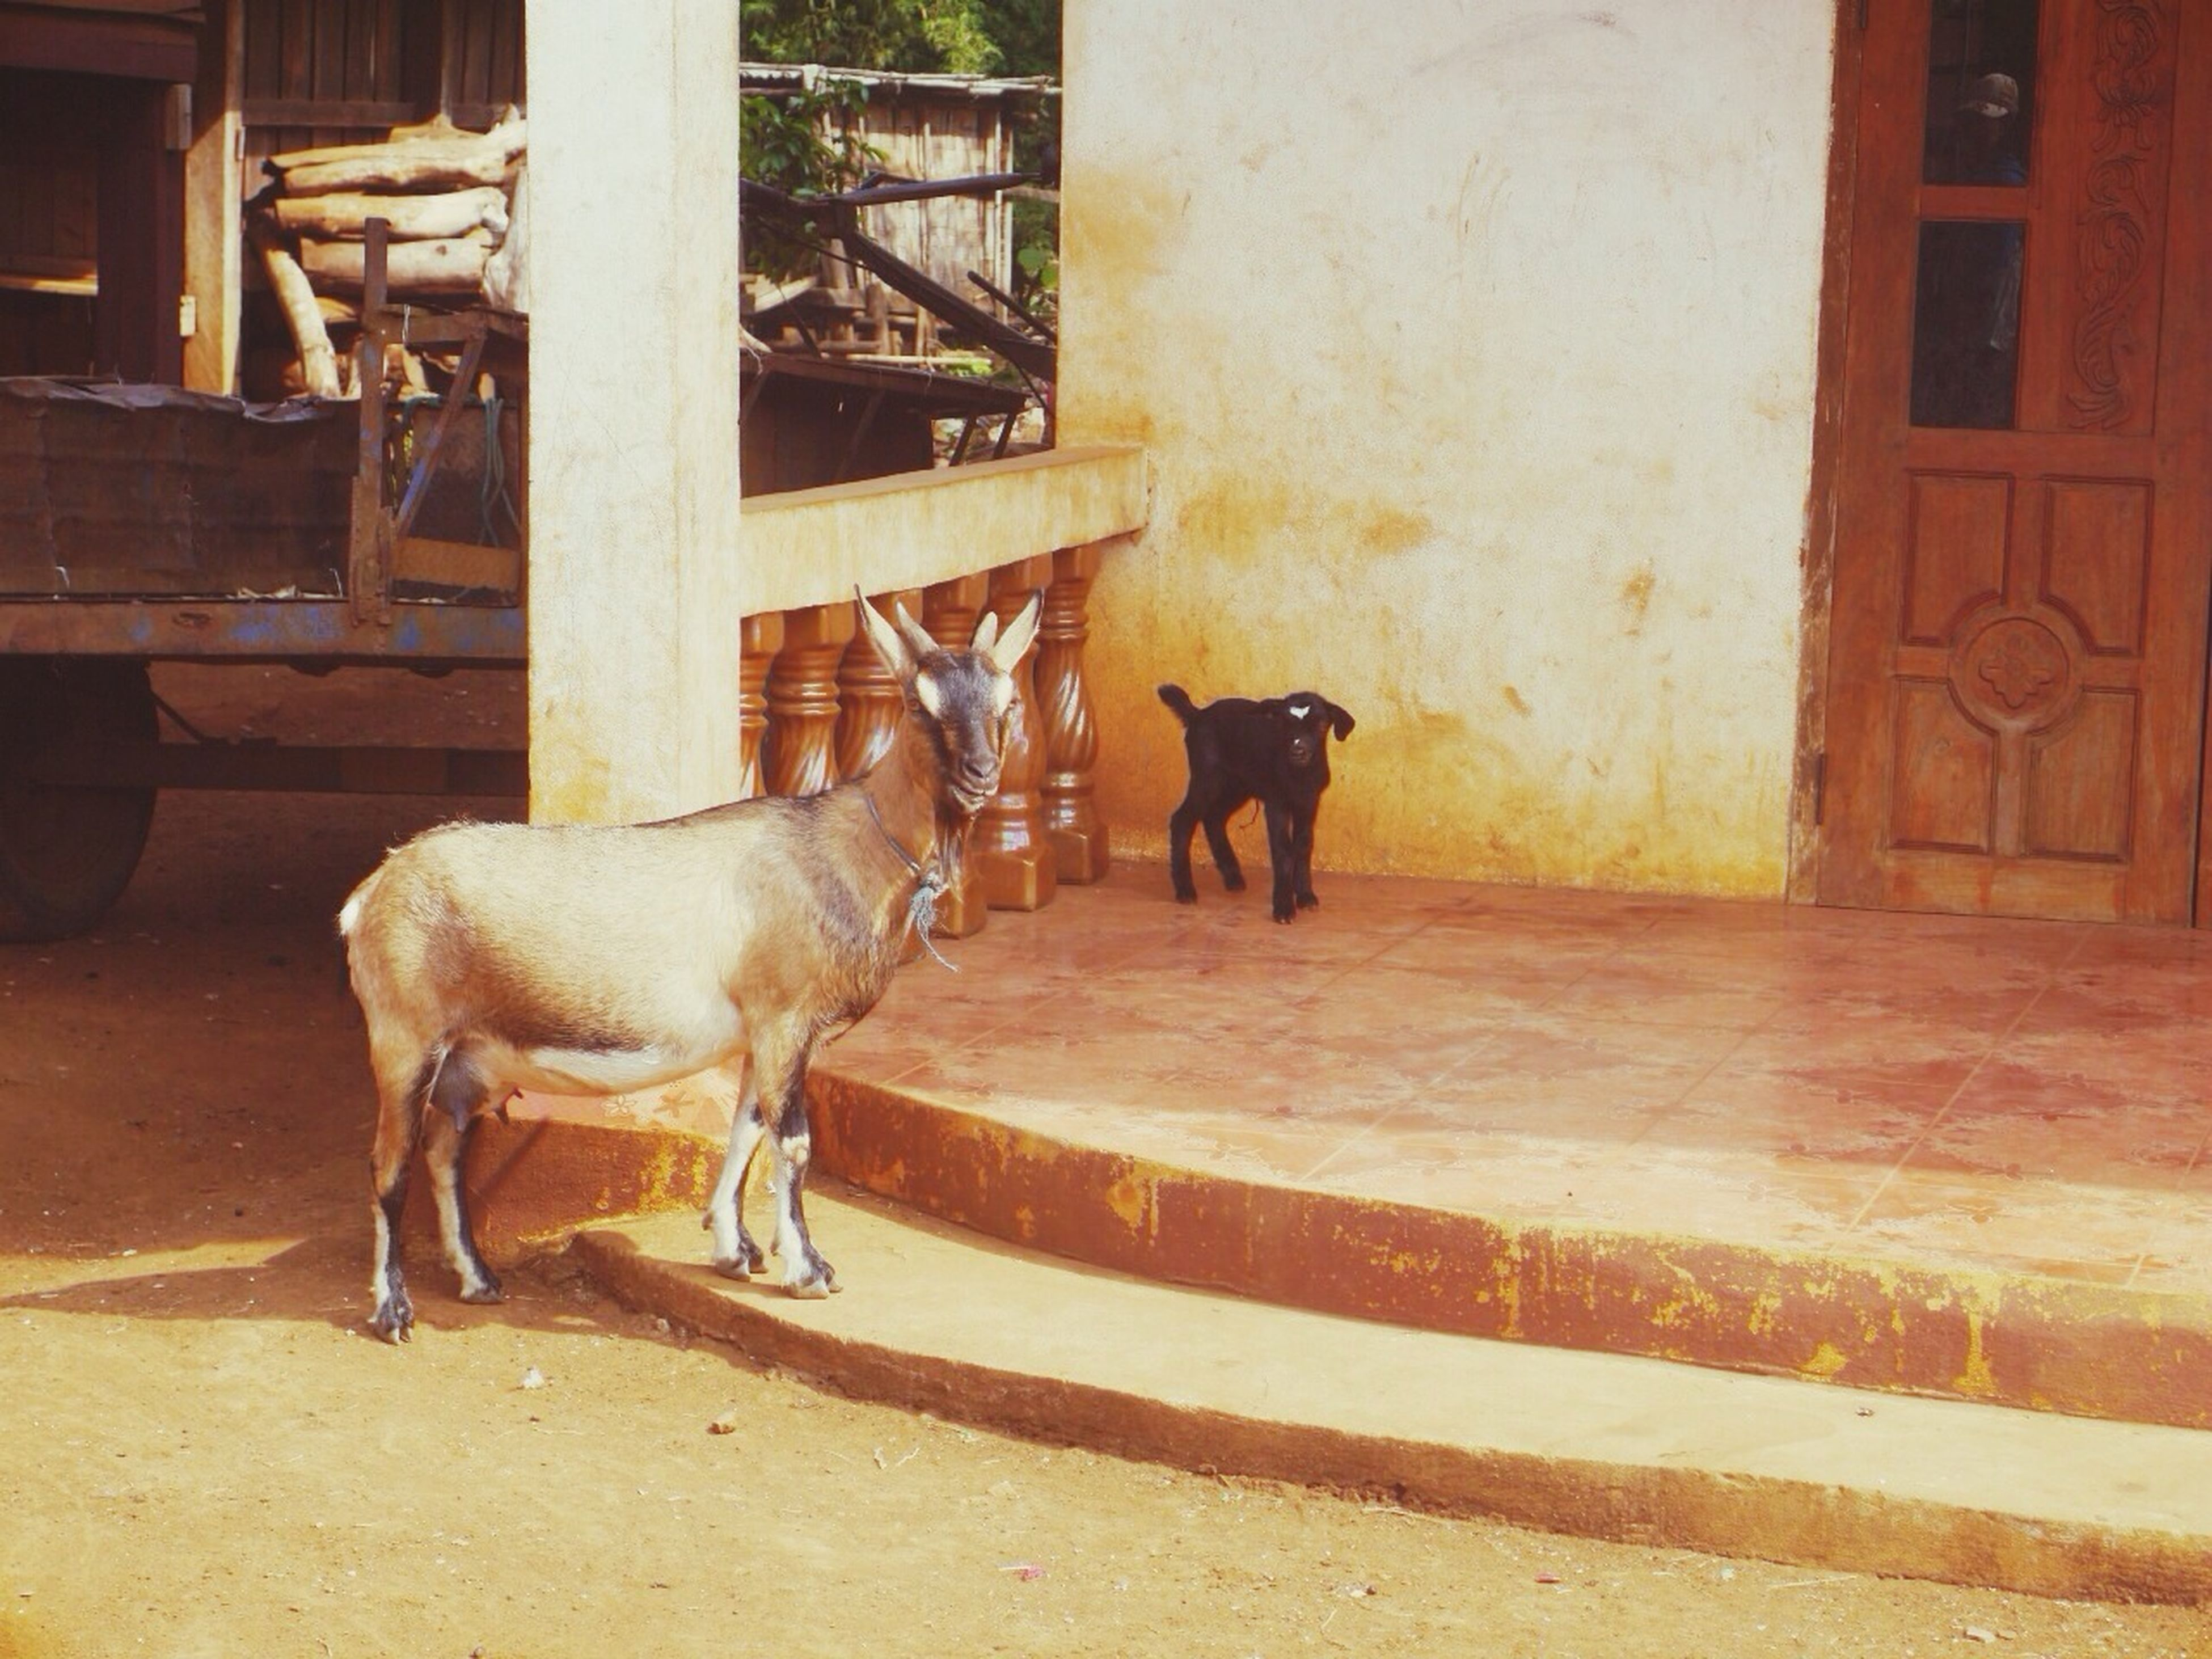 domestic animals, animal themes, mammal, livestock, one animal, horse, built structure, two animals, building exterior, architecture, working animal, standing, herbivorous, pets, full length, side view, day, sunlight, outdoors, dog